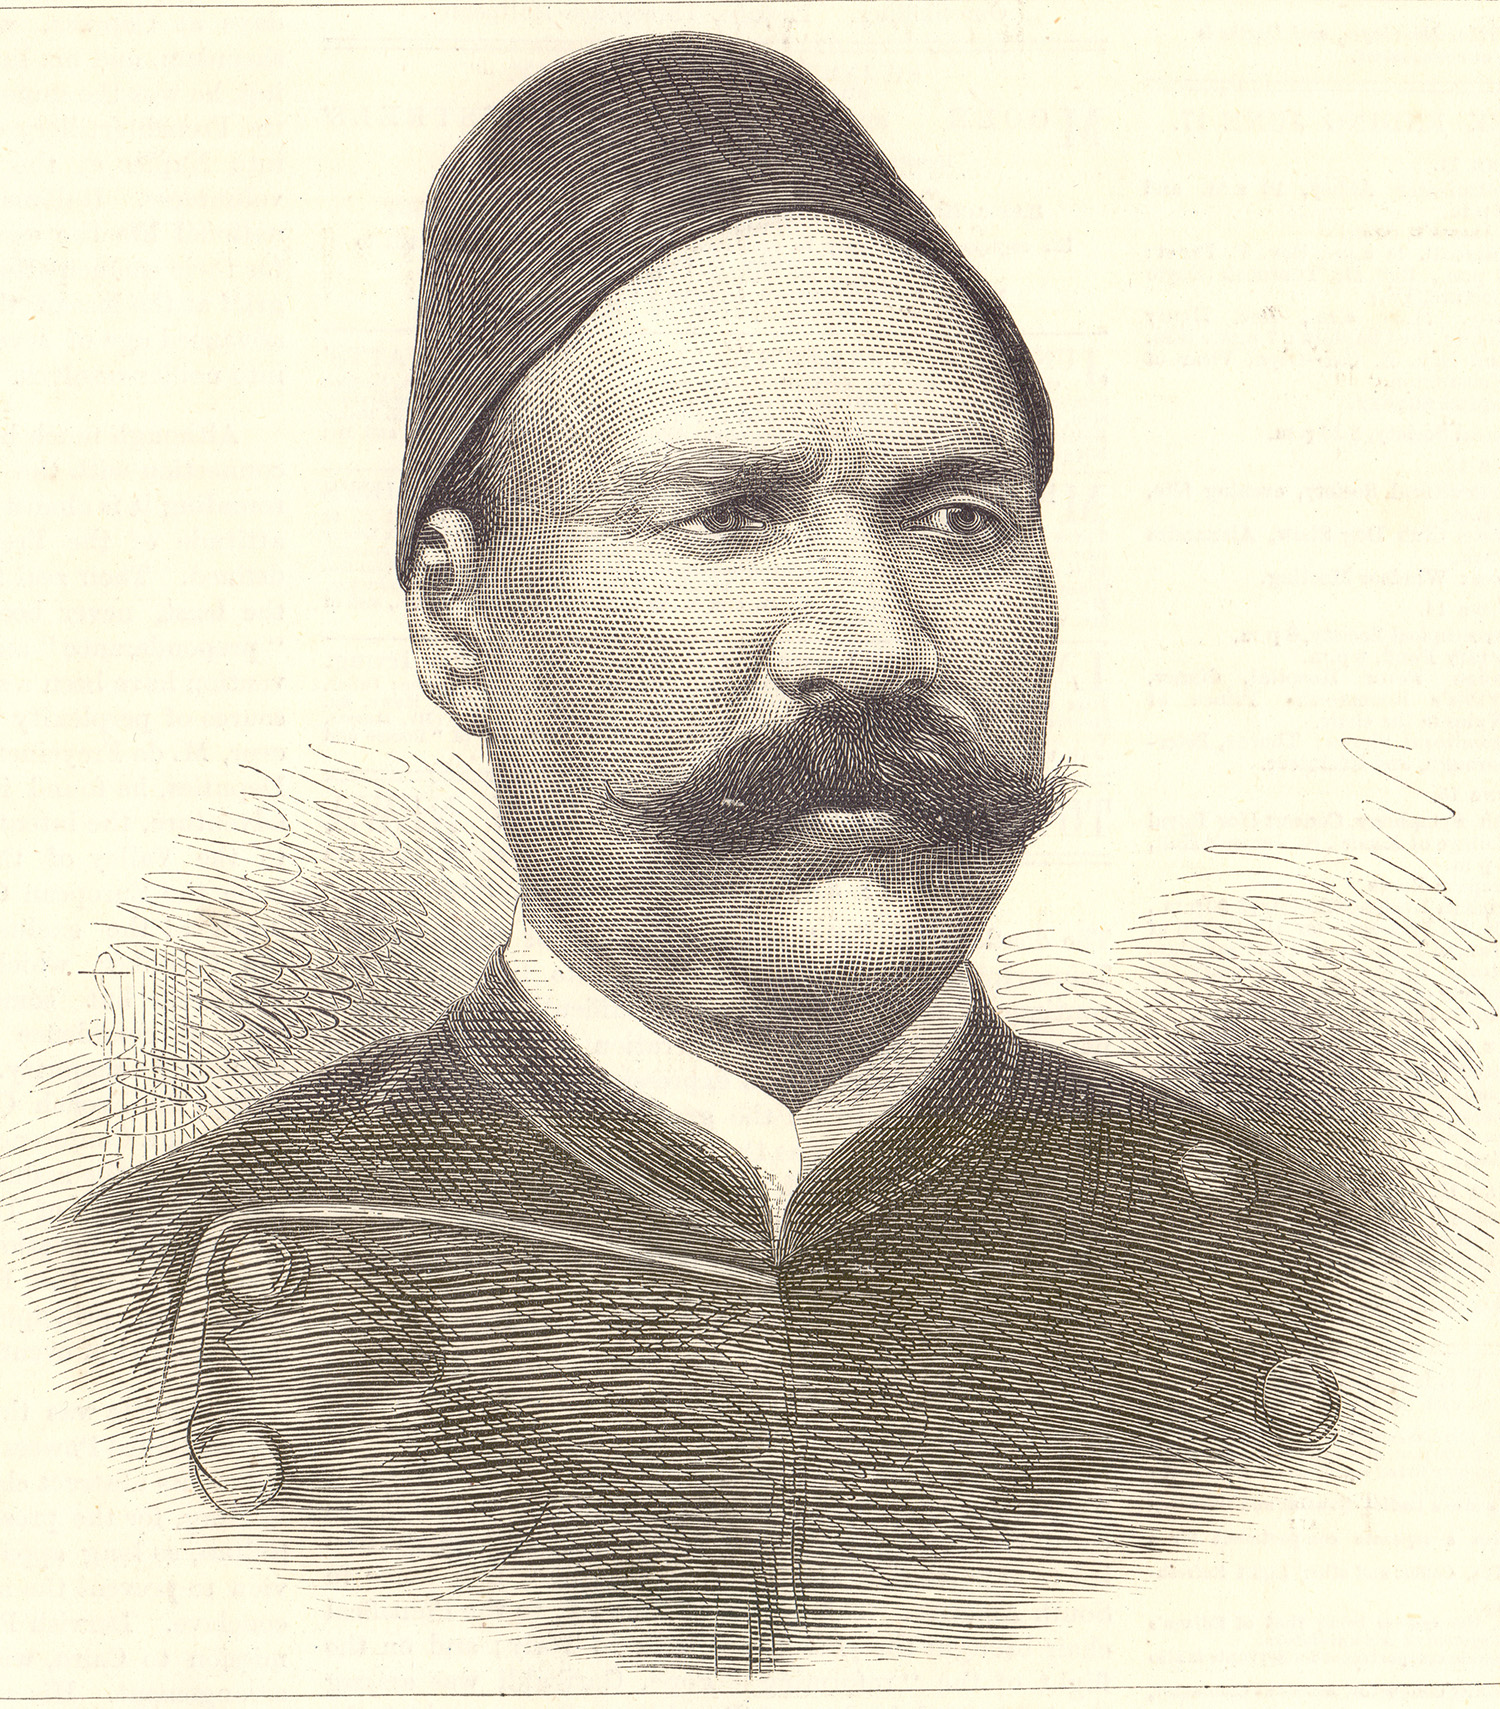 Ahmed Arabi, who led a nationalist uprising in Egypt that resulted in the British invasion of the country in 1882